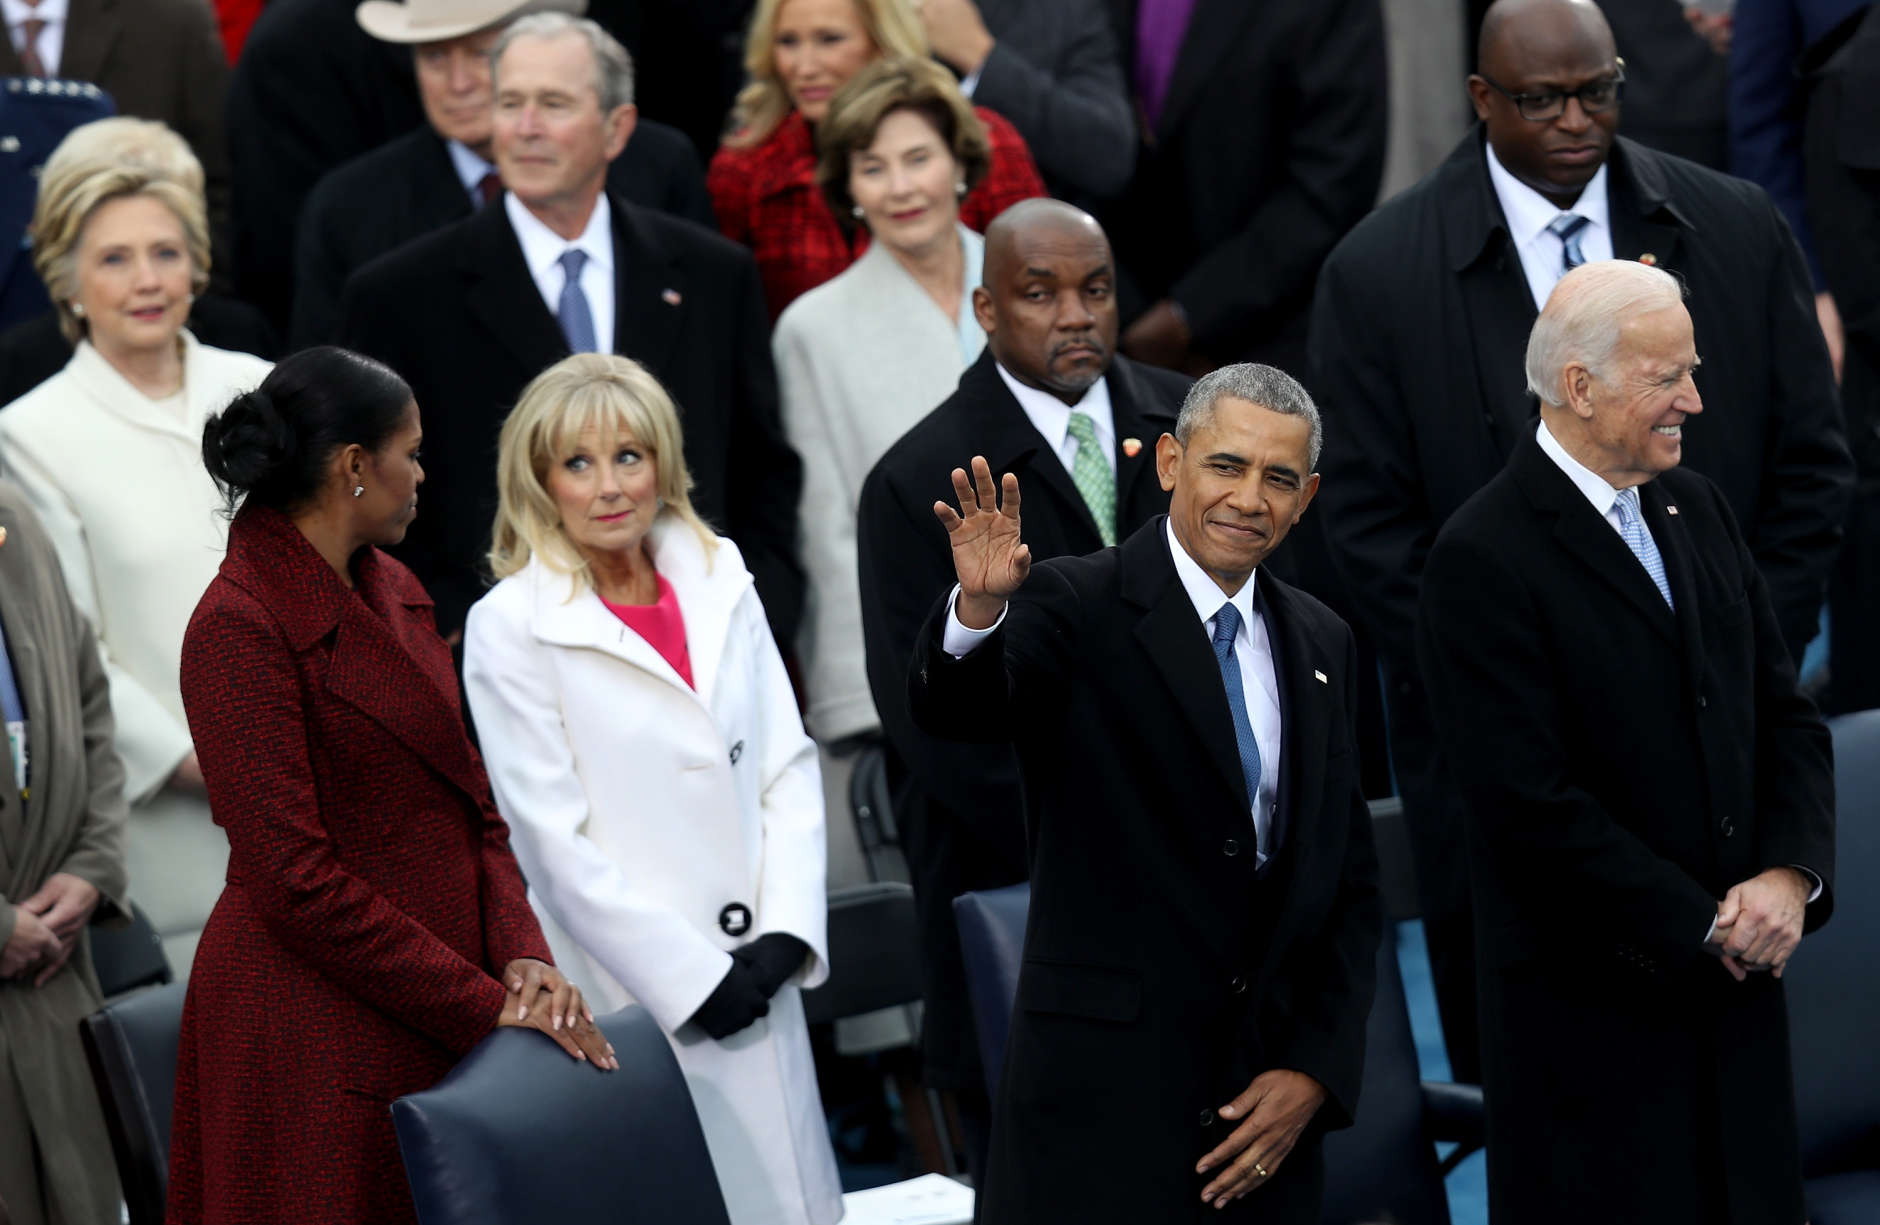 WASHINGTON, DC - JANUARY 20:  President Barack Obama waves to the crowd as Michelle Obama (L) and Jill Biden stand by on the West Front of the U.S. Capitol on January 20, 2017 in Washington, DC. In today's inauguration ceremony Donald J. Trump becomes the 45th president of the United States.  (Photo by Joe Raedle/Getty Images)